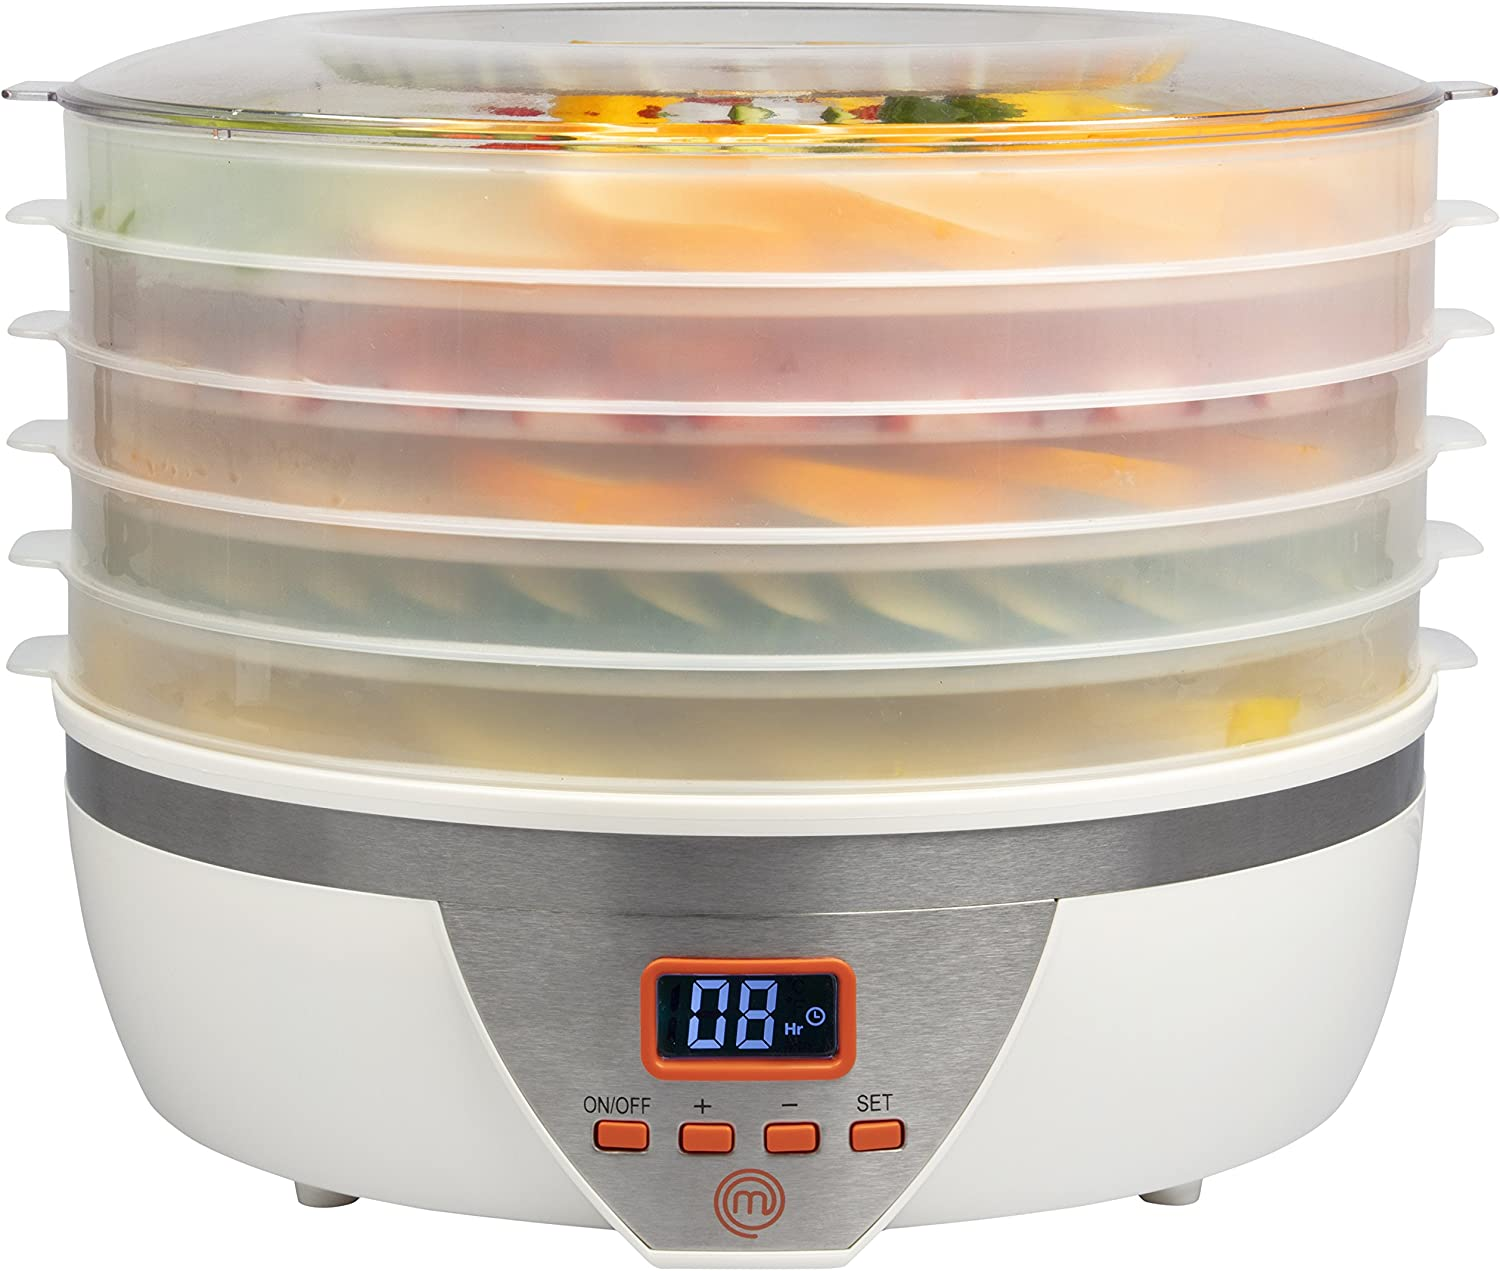 MasterChef Food Dehydrator w 5 Trays and Digital Temperature Controls- Dehydrating Machine includes FREE Recipe Guide- Overheating Protection 8L Capacity- Dry Fruits, Vegetables Beef Jerky and More